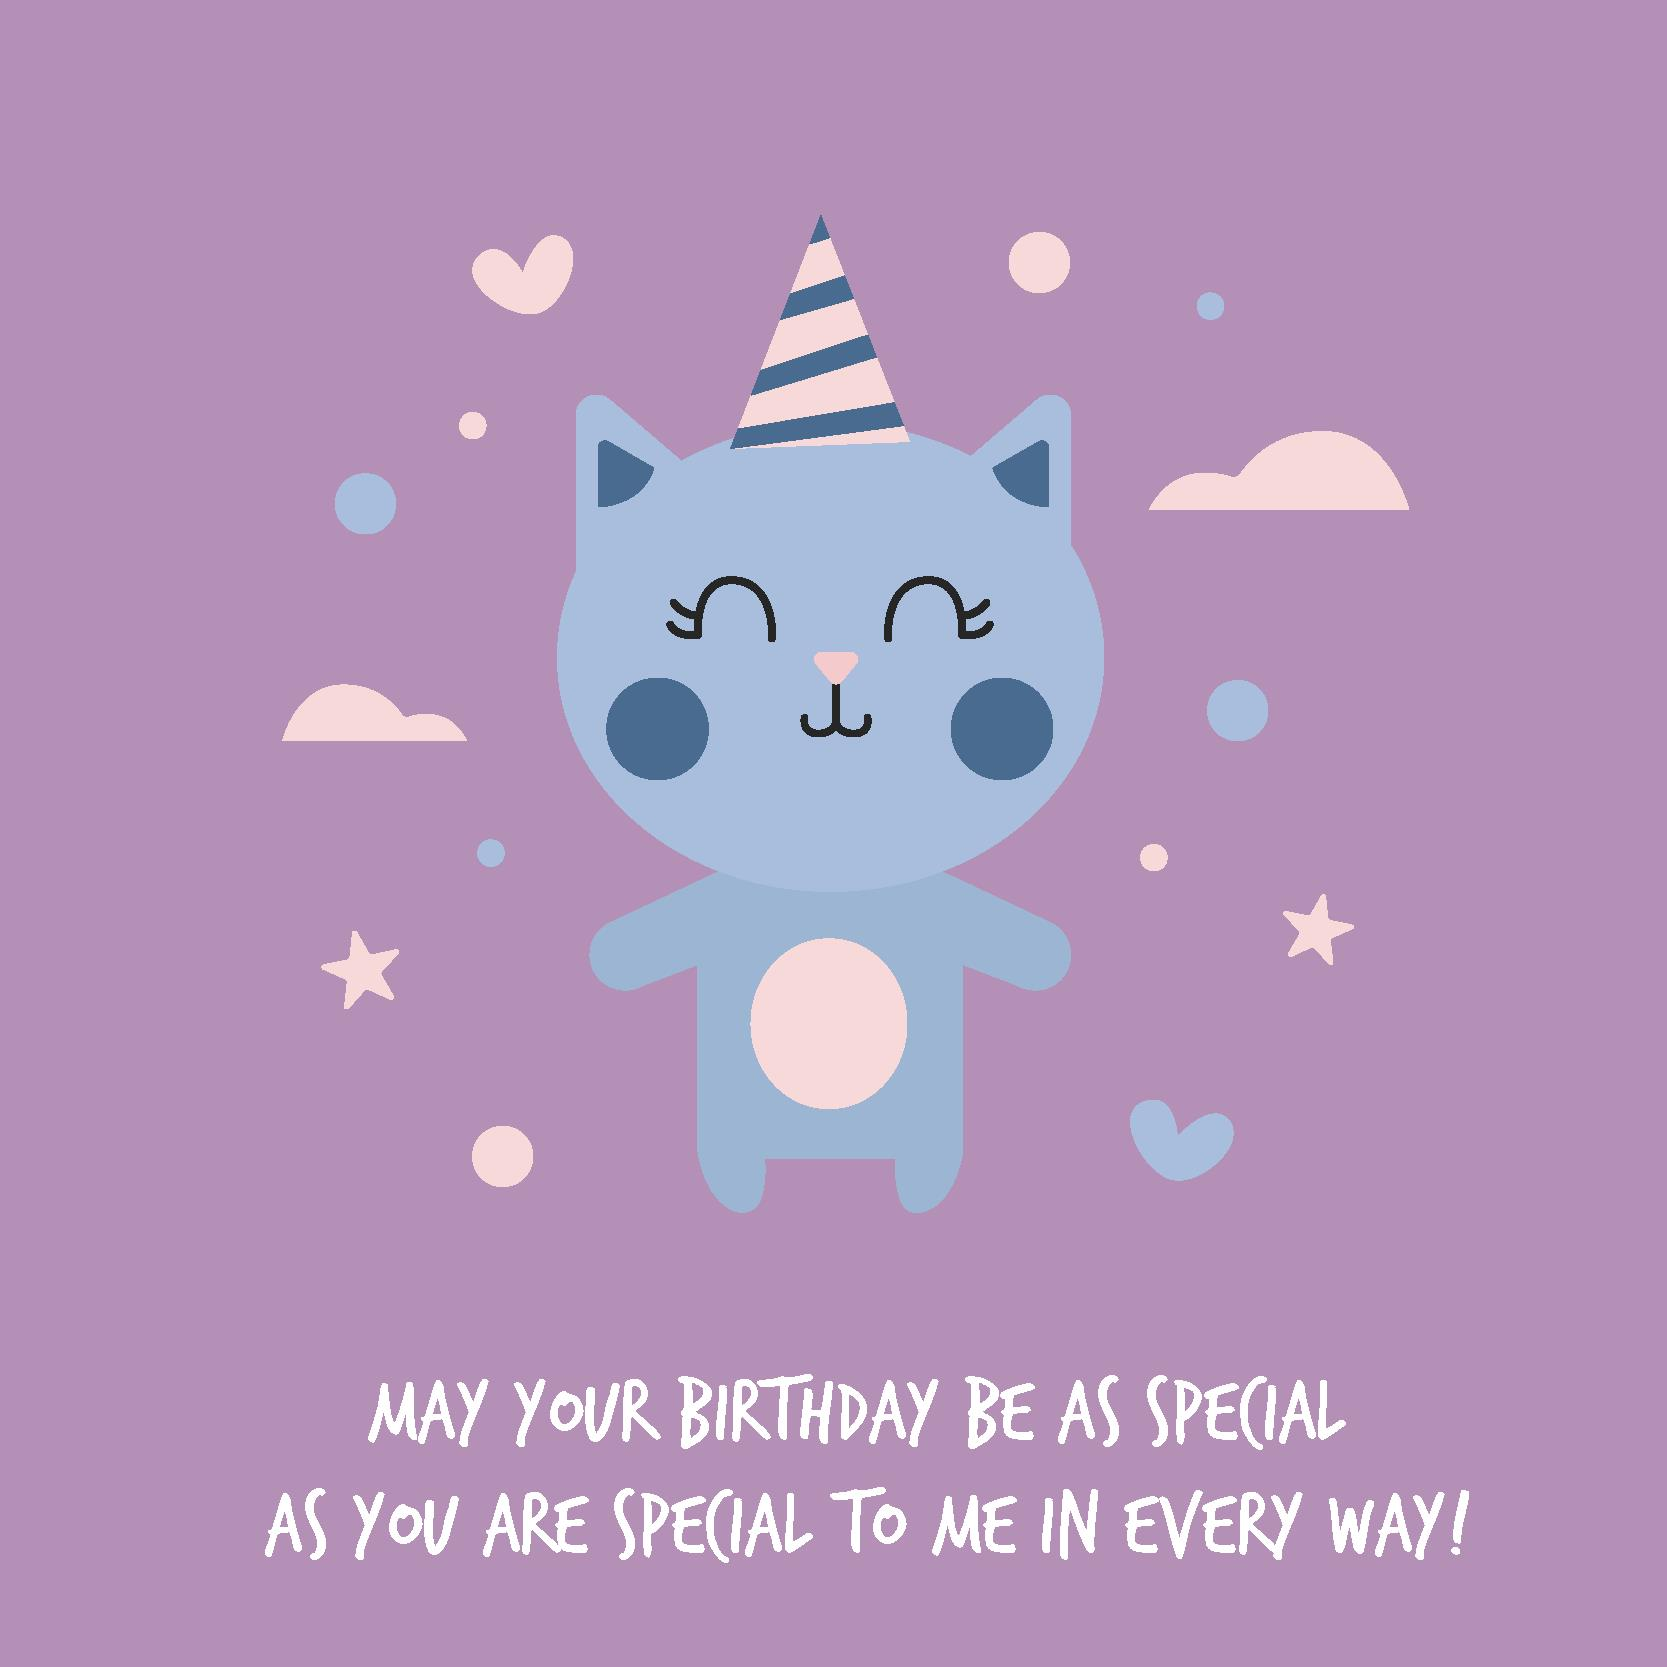 special-birthday-wishes-04